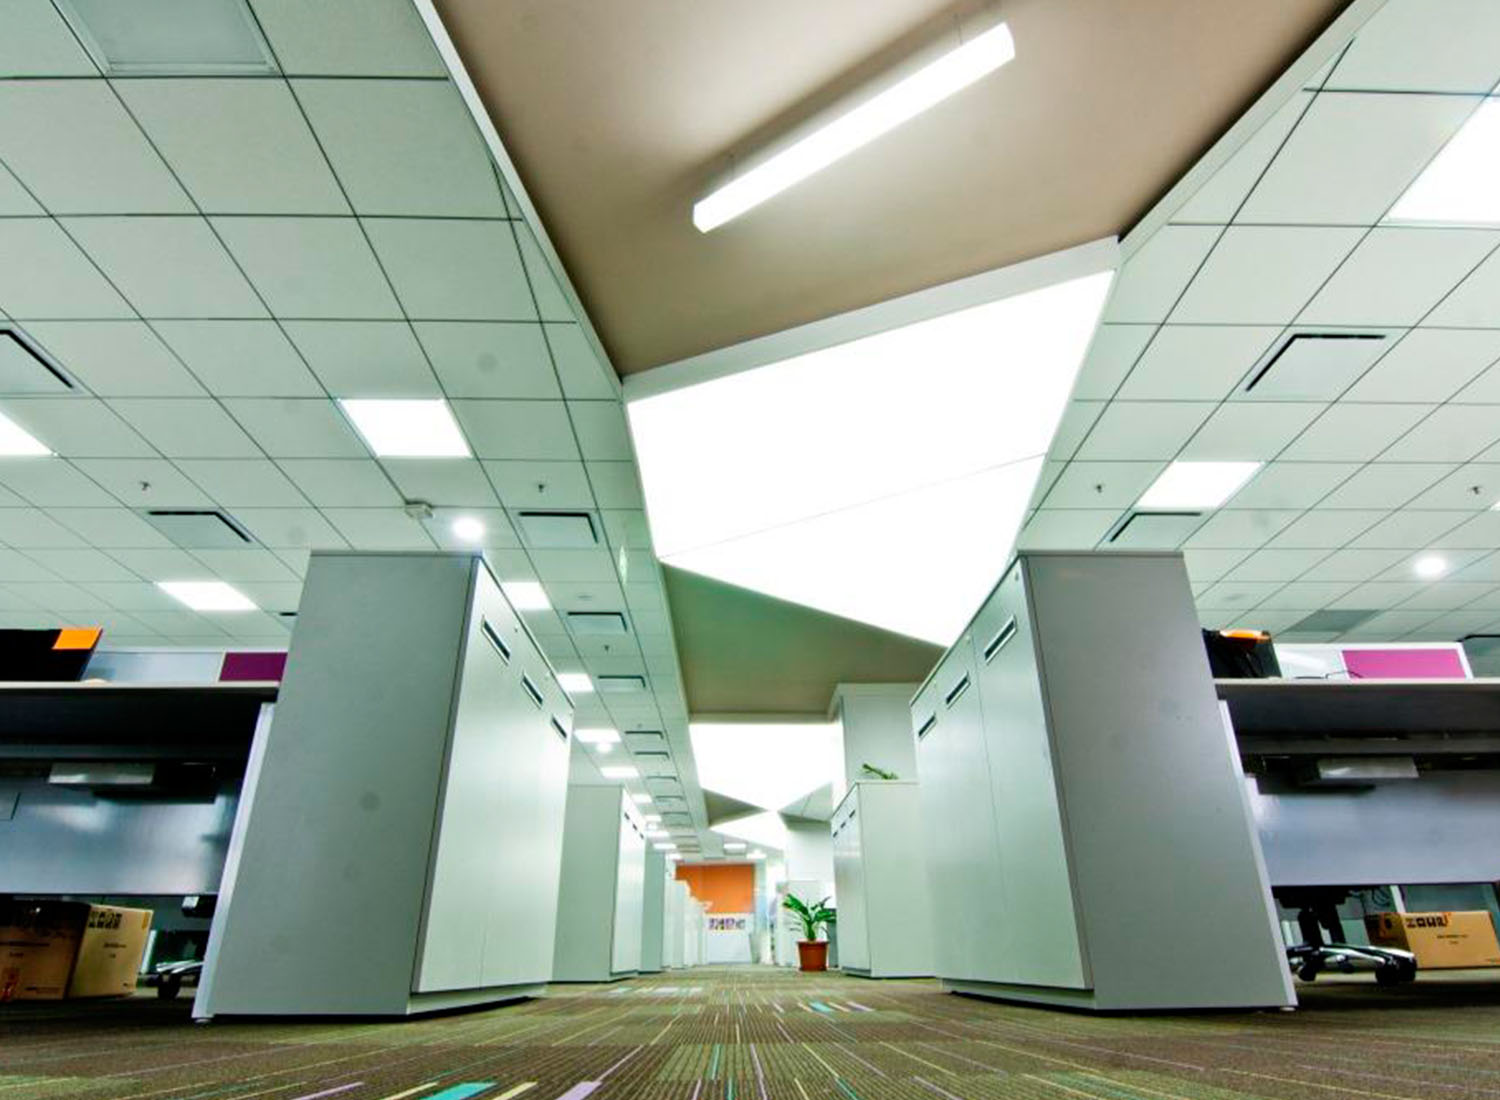 Hindustan - Stretch Ceiling Translucent with Backlighting in Corporate